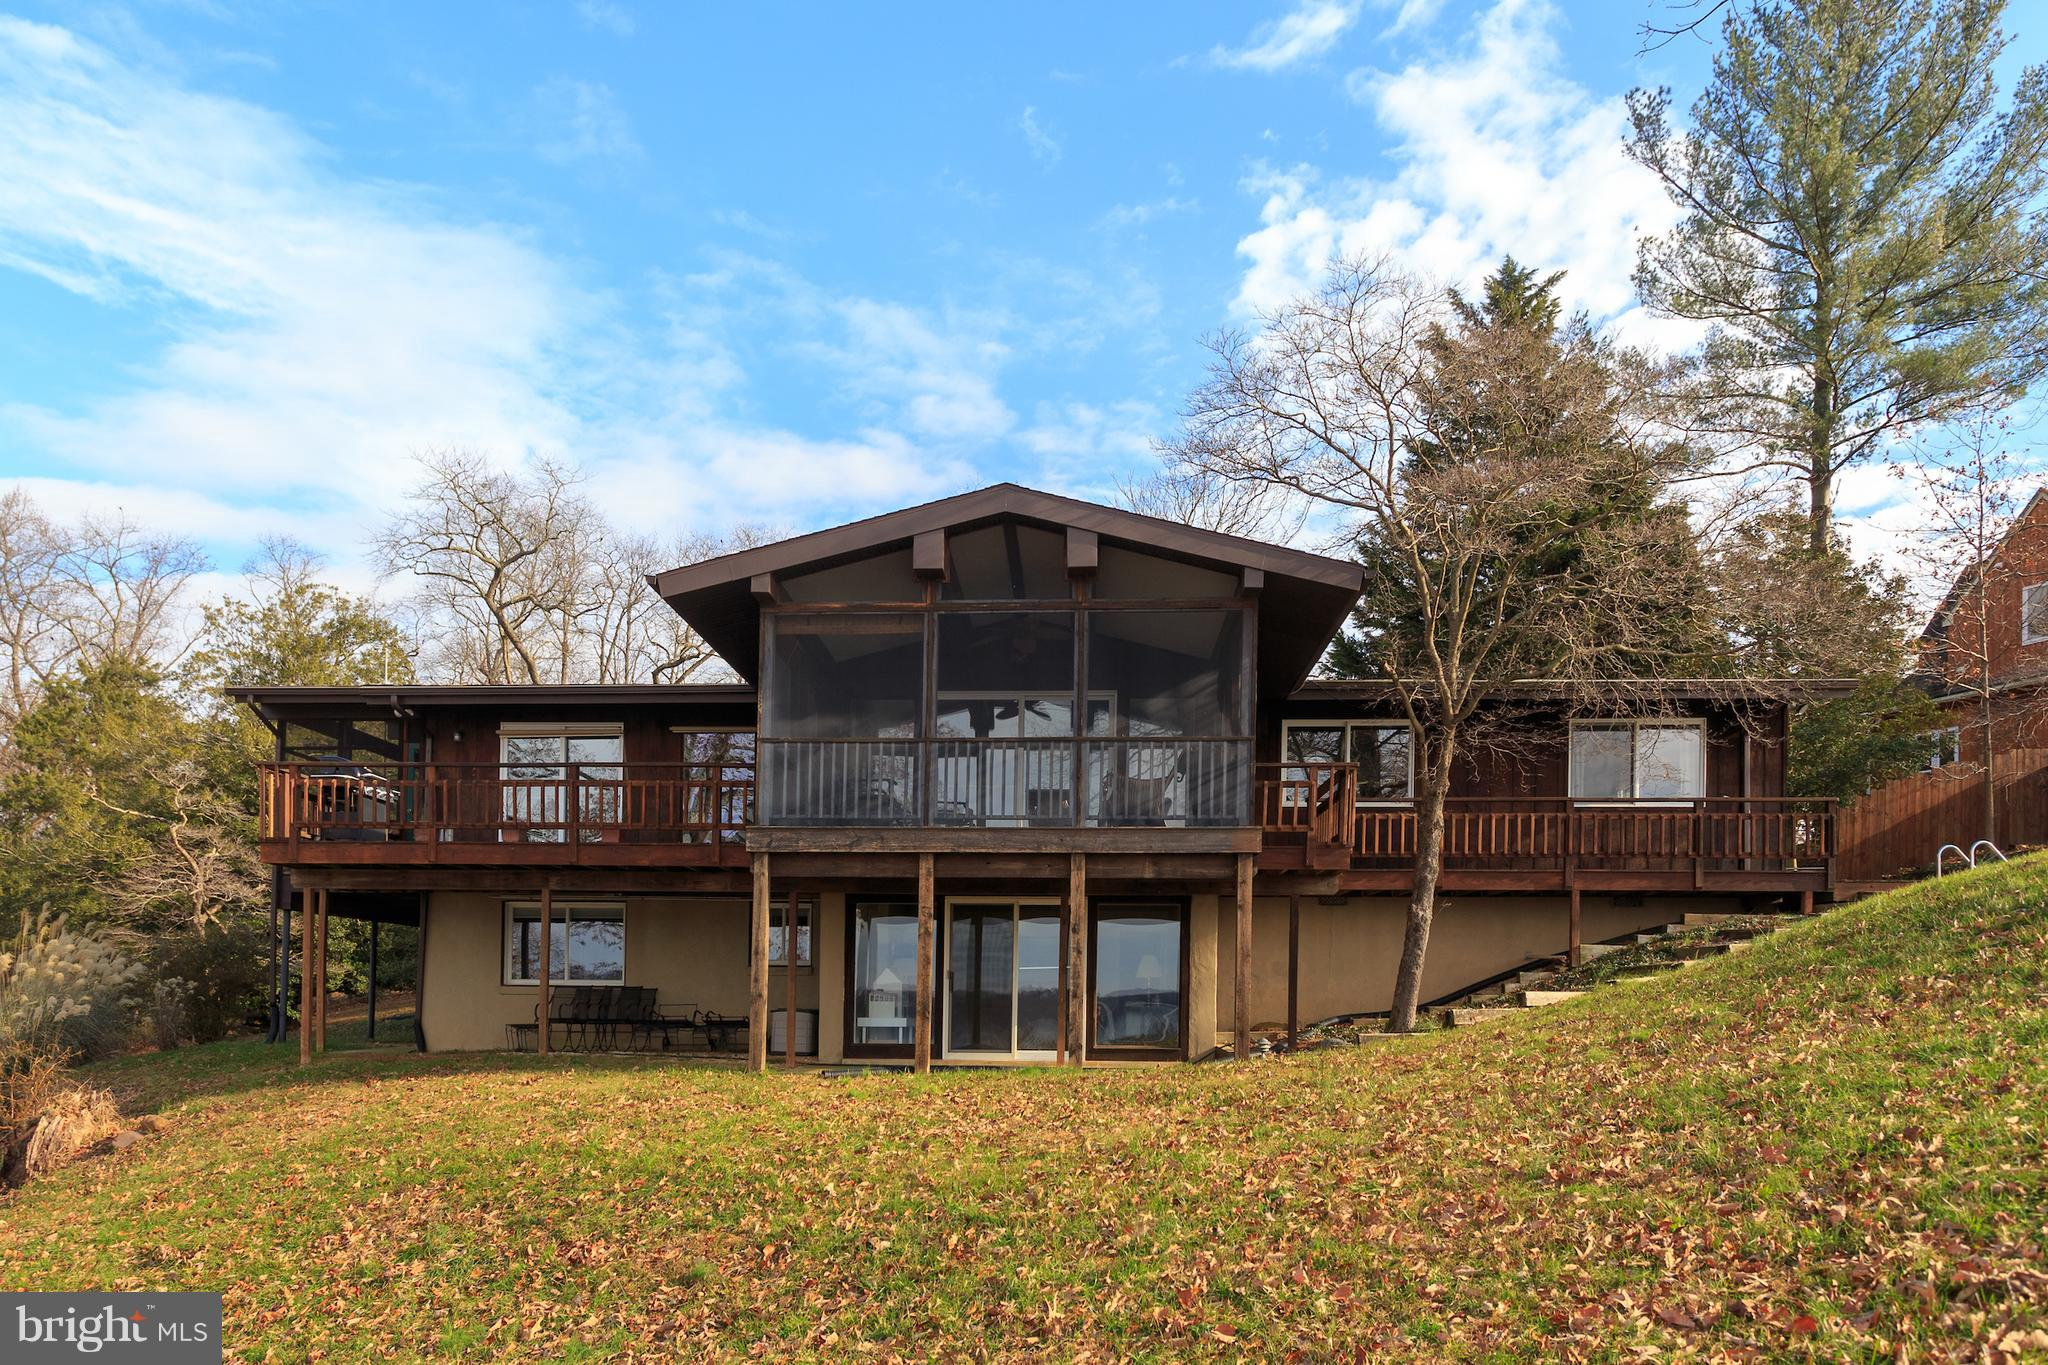 213 VEASEY FORD DRIVE, ELKTON, MD 21921